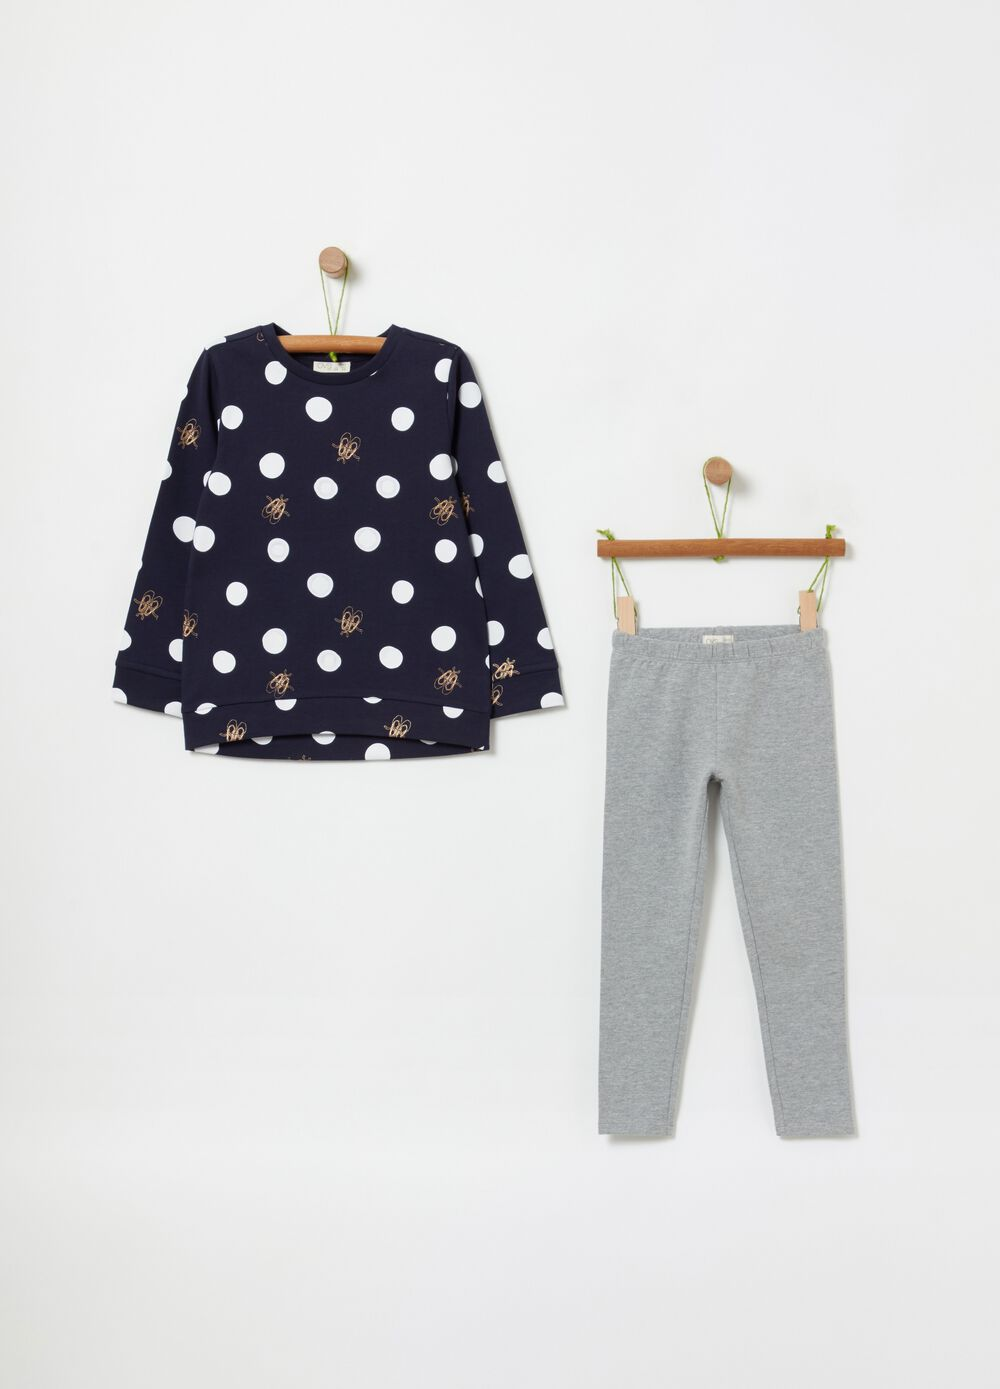 Sweatshirt and leggings jogging set with polka dots